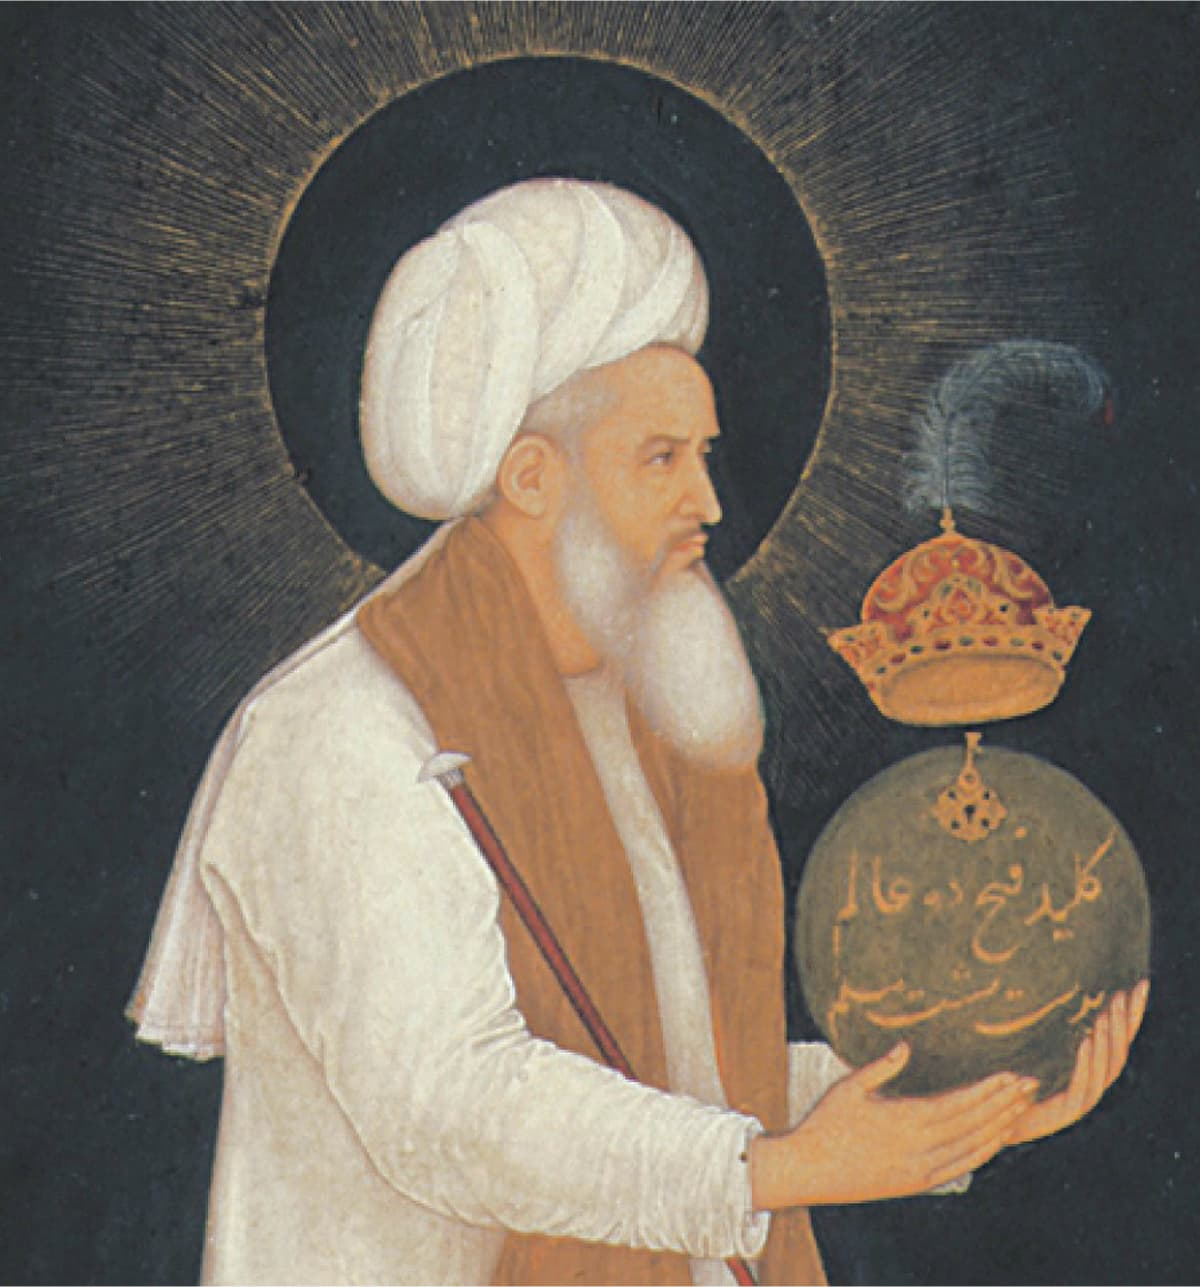 Shaikh Moeenuddin Chishti Ajmeri  | Courtesy trustees of the Chester Beatty library, Dublin